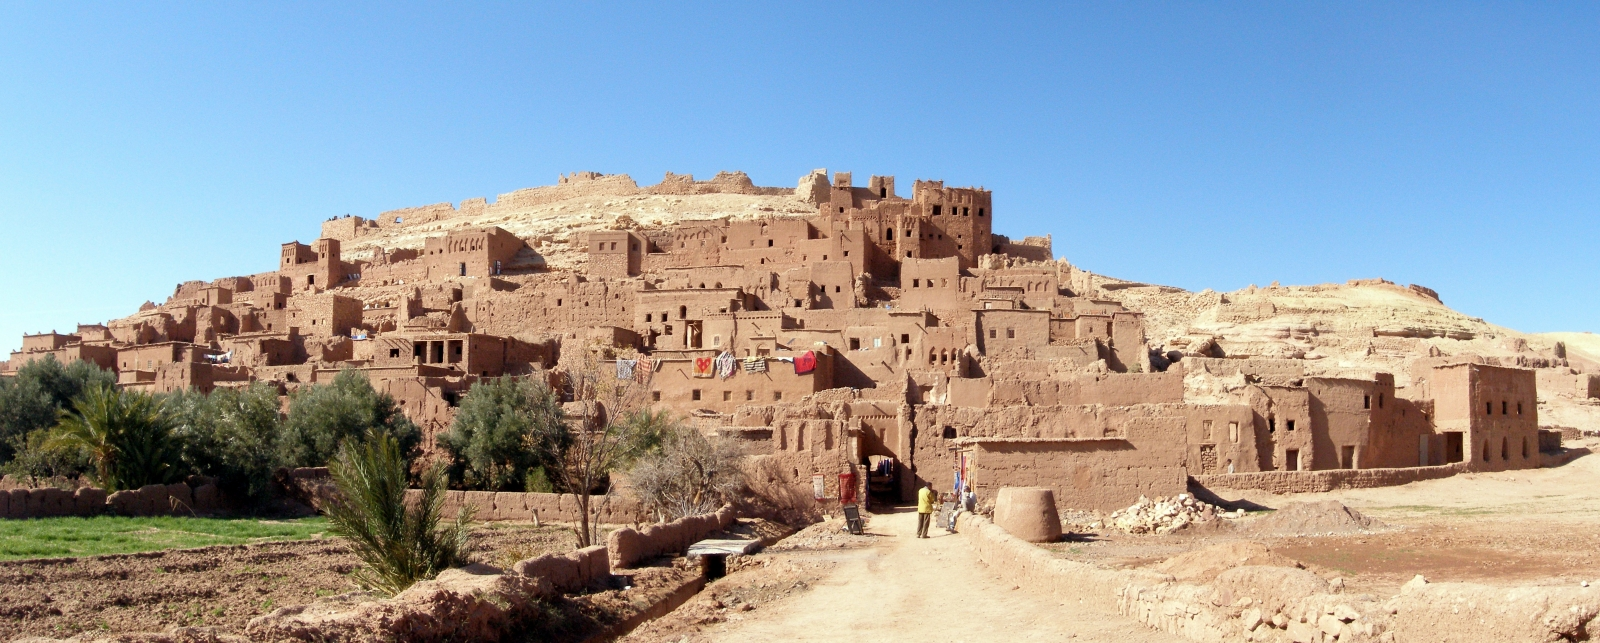 Aït Benhaddou in Morocco, where all the buildings are built from clay mixed with tamarind fibre